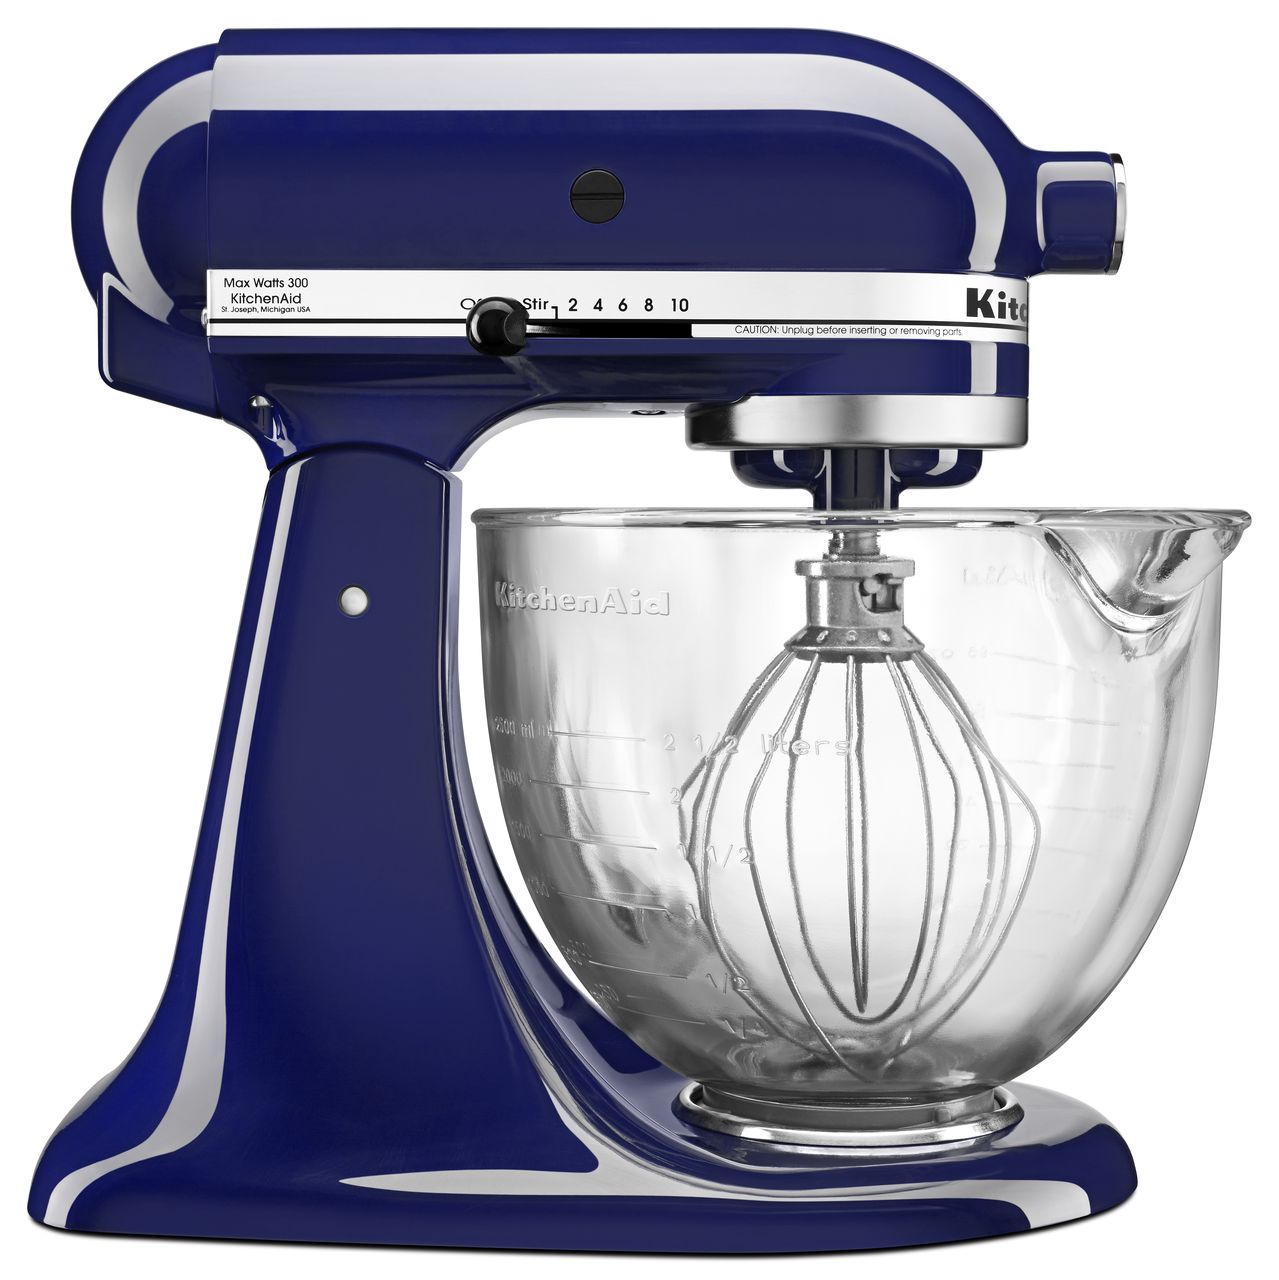 KitchenAidArtisan Series 5-Quart Tilt-Head Stand Mixer, Cobalt Blue with Glass Bowl (KSM105GBCBU) - Closeout